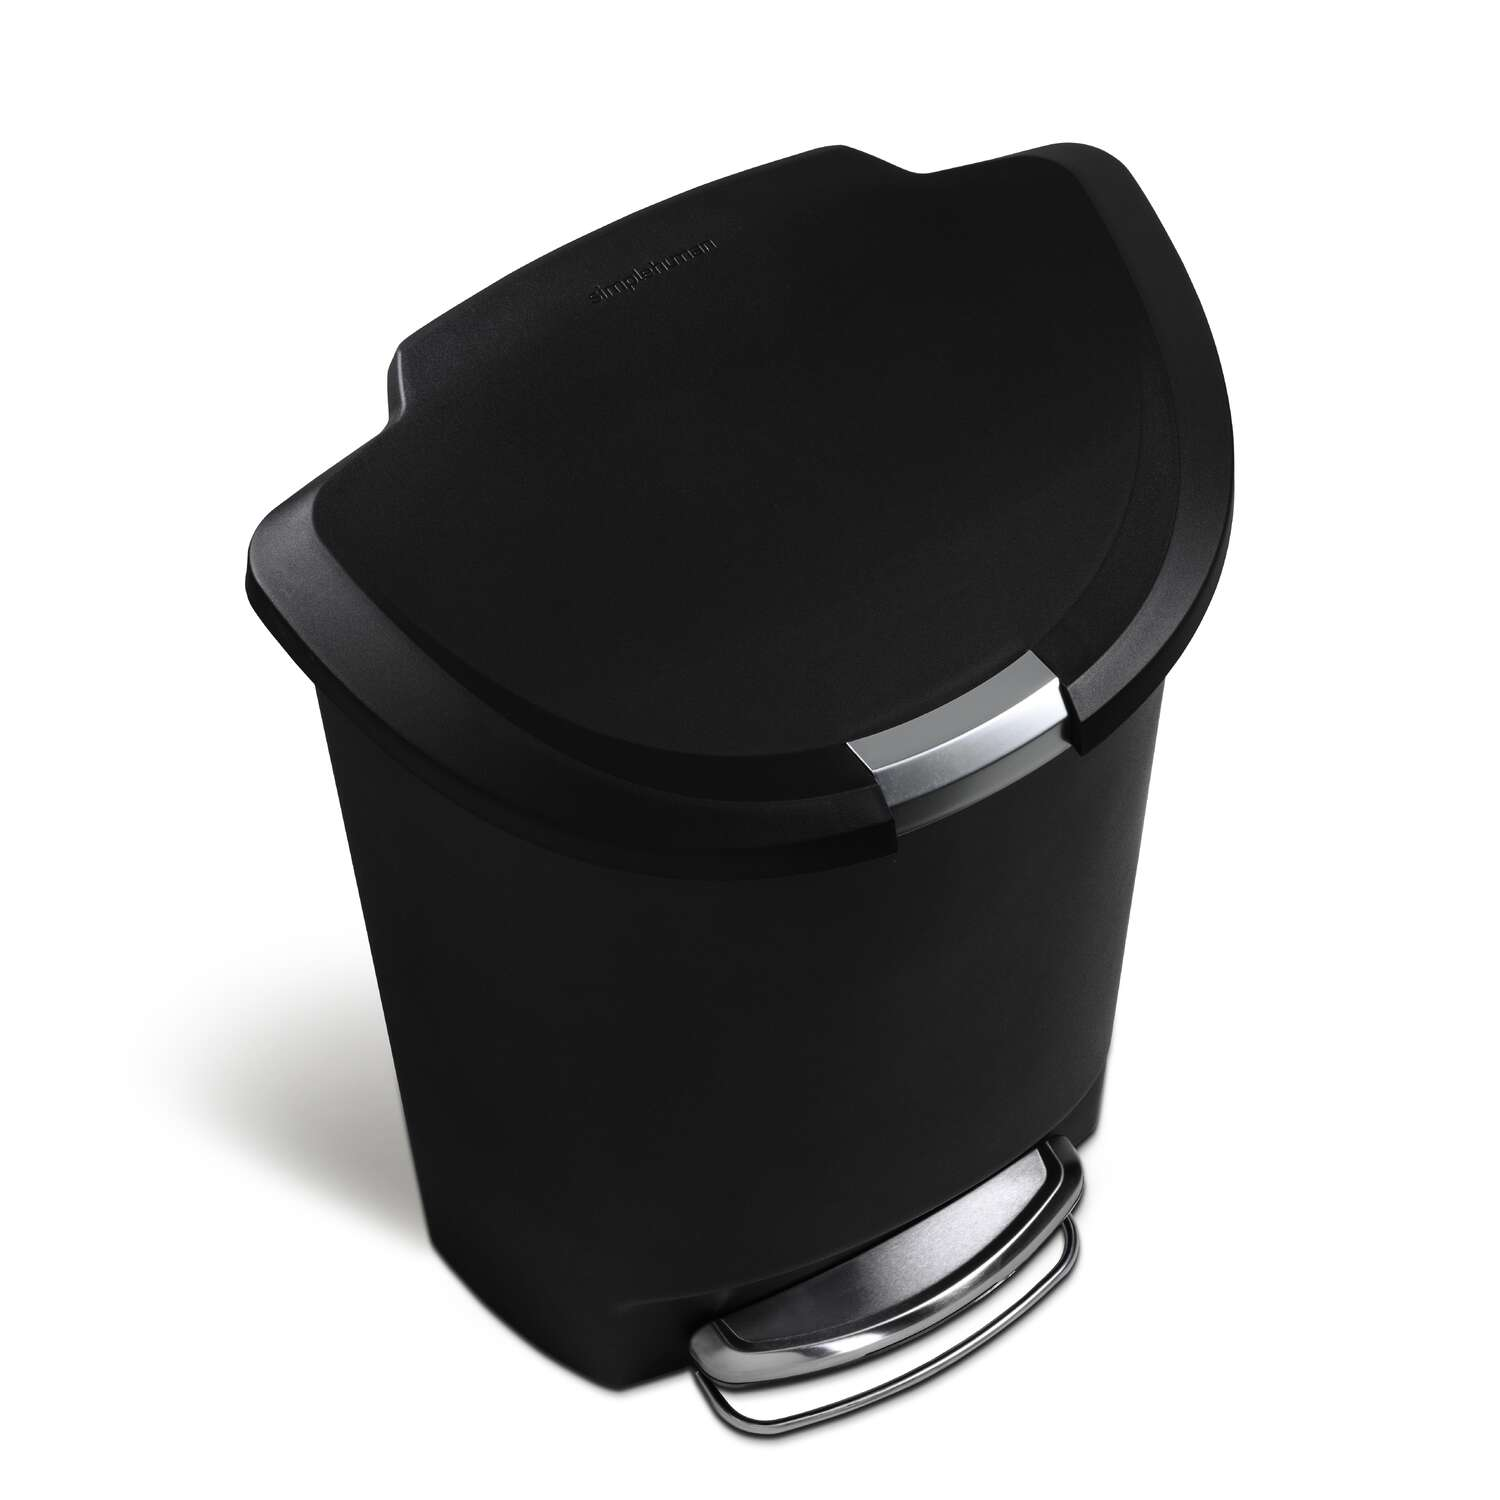 simplehuman  Black  Semi-Round Step  Wastebasket  14.5